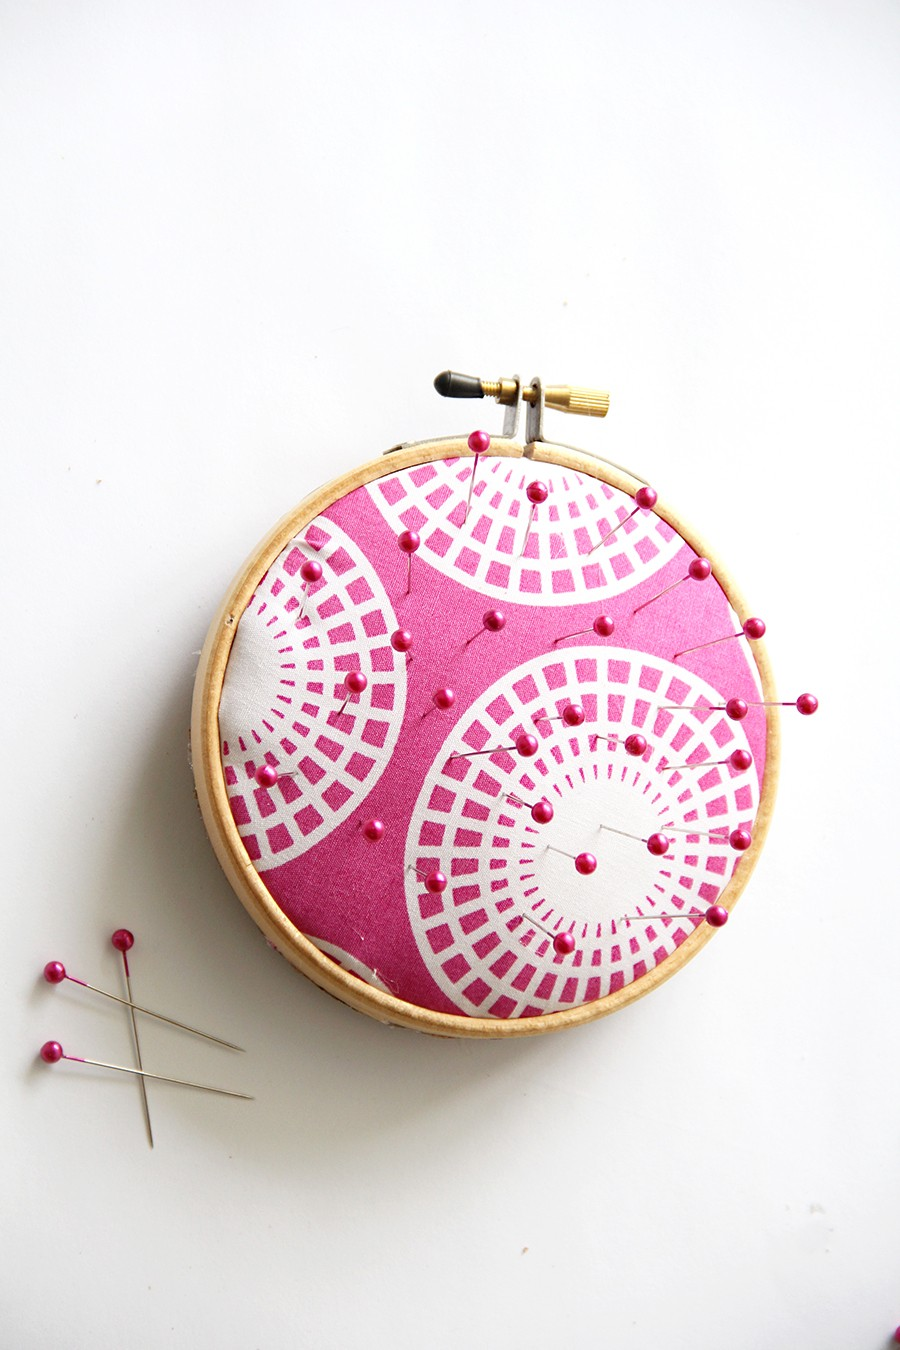 make this: embroidery hoop pin cushion